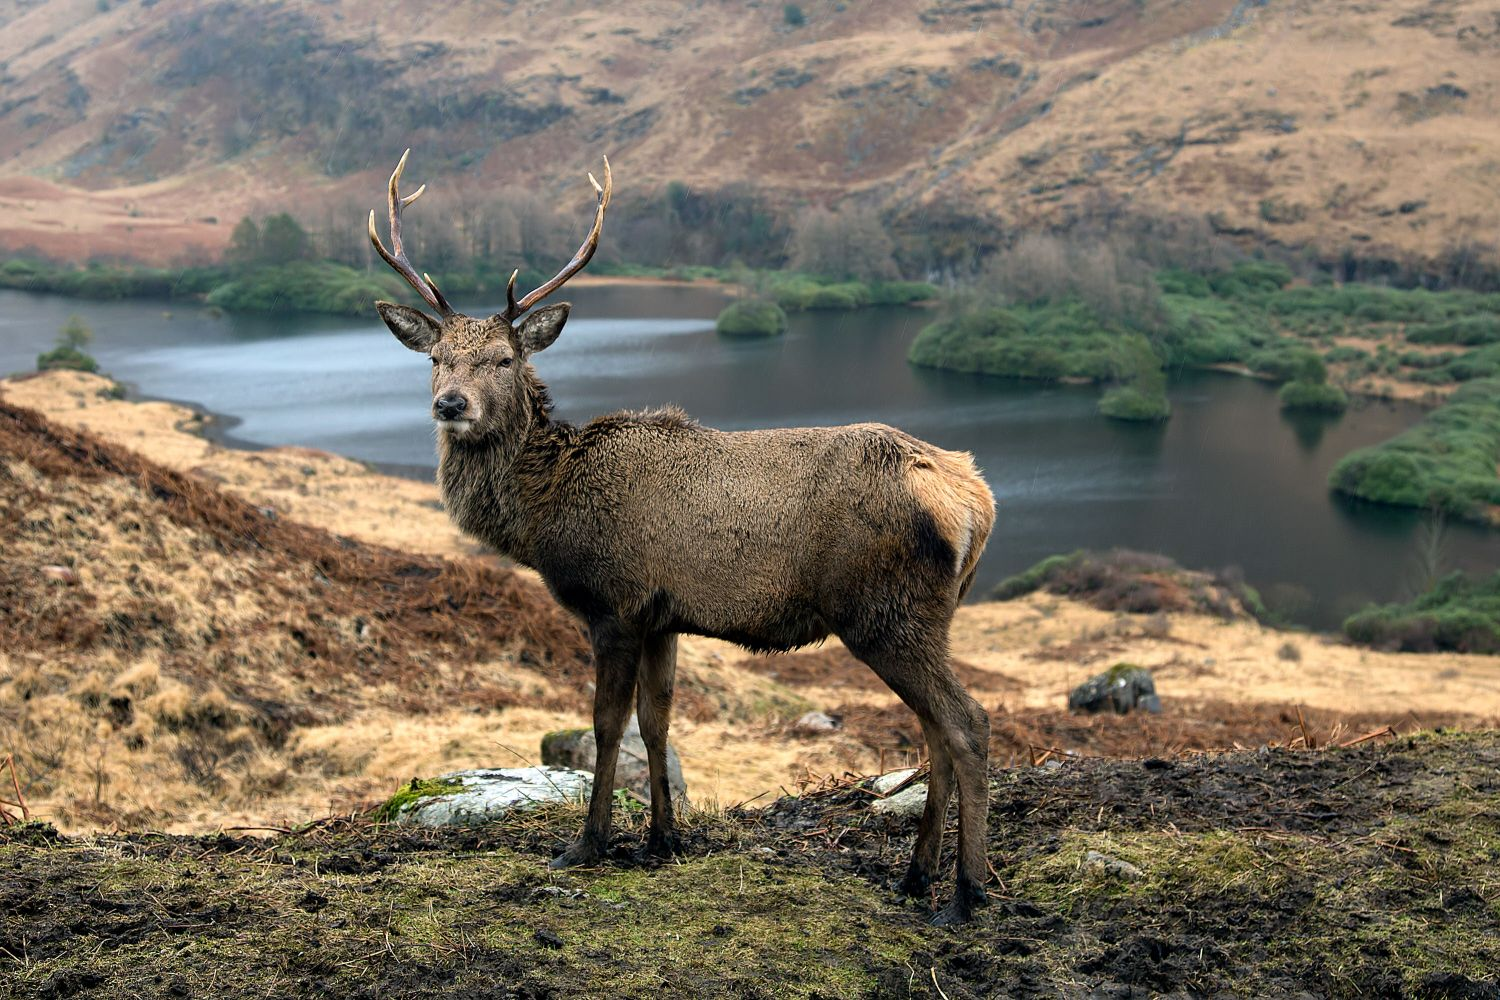 The Glen Etive Stag